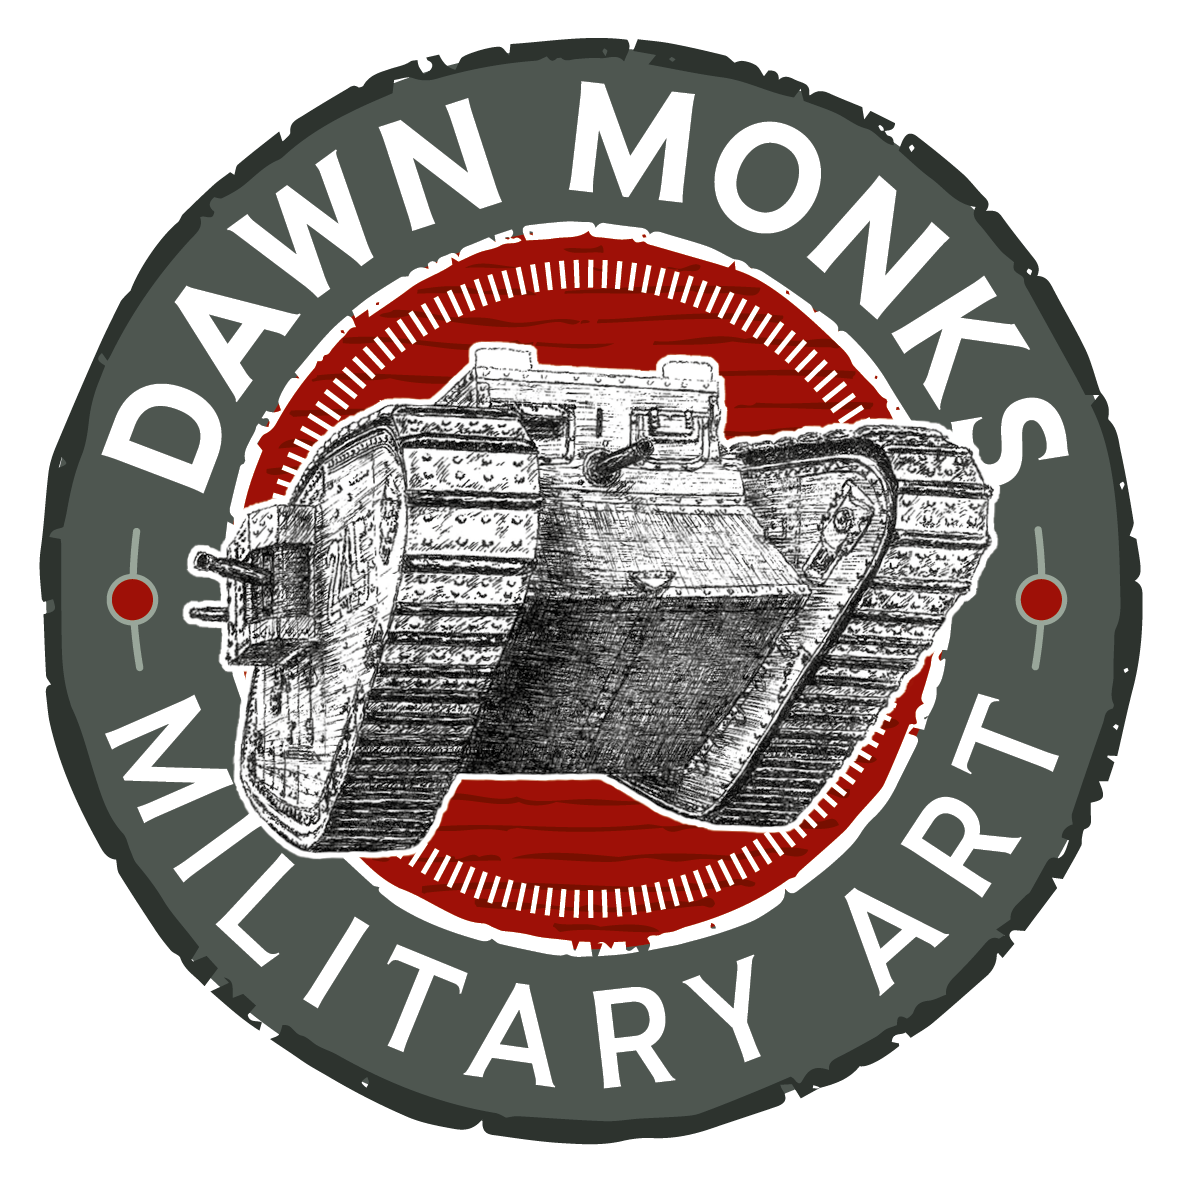 Dawn Monks Military Art & Illustrations